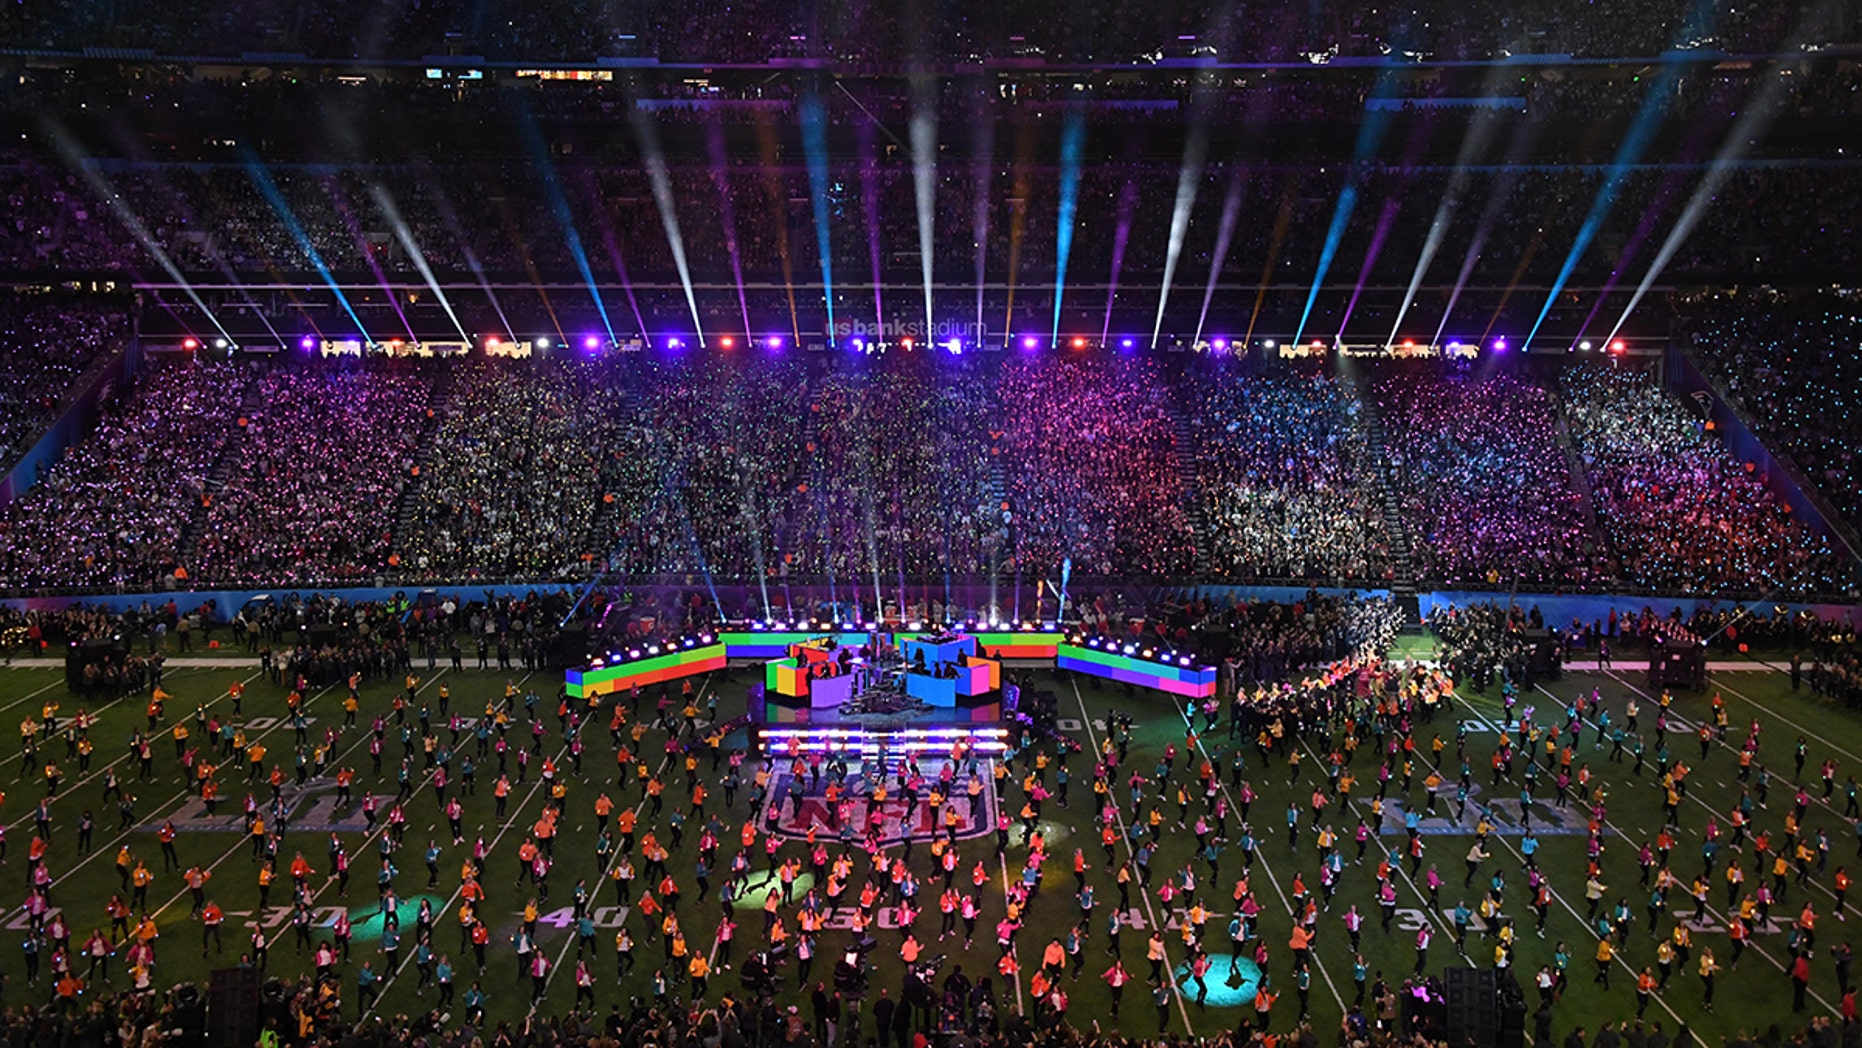 Feb 4, 2018; Minneapolis, MN, USA; Recording artist Justin Timberlake performs at halftime in Super Bowl LII between the Philadelphia Eagles and the New England Patriots at U.S. Bank Stadium. Mandatory Credit: Kirby Lee-USA TODAY Sports - 10588263